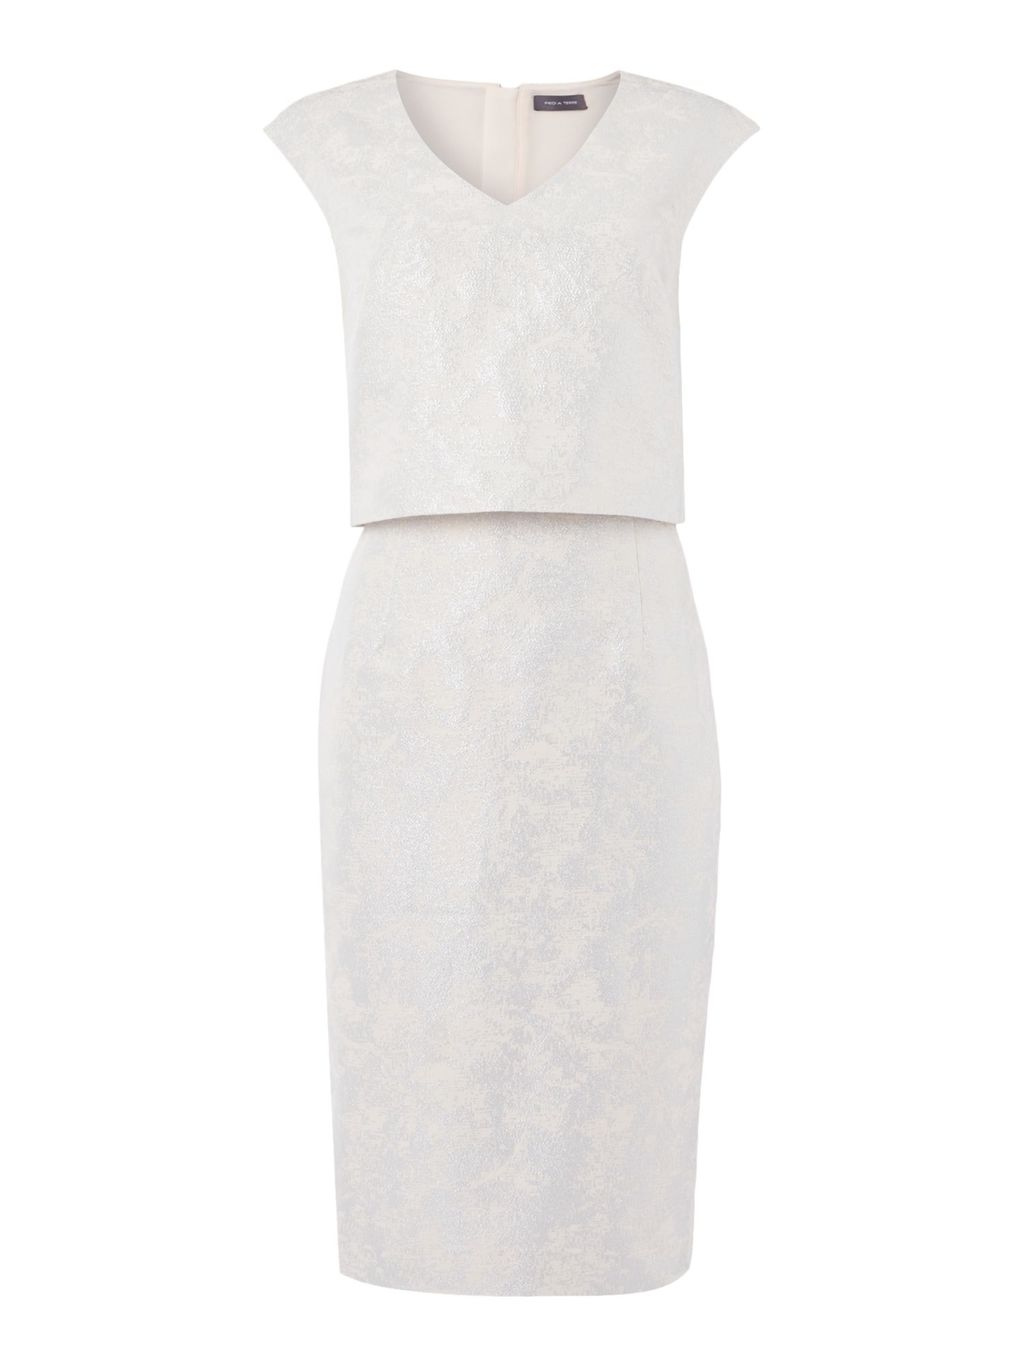 Lace Cindy, Grey - style: shift; neckline: v-neck; sleeve style: capped; fit: tailored/fitted; predominant colour: light grey; length: just above the knee; fibres: polyester/polyamide - mix; occasions: occasion; sleeve length: short sleeve; texture group: lace; pattern type: fabric; pattern: patterned/print; embellishment: lace; season: s/s 2016; wardrobe: event